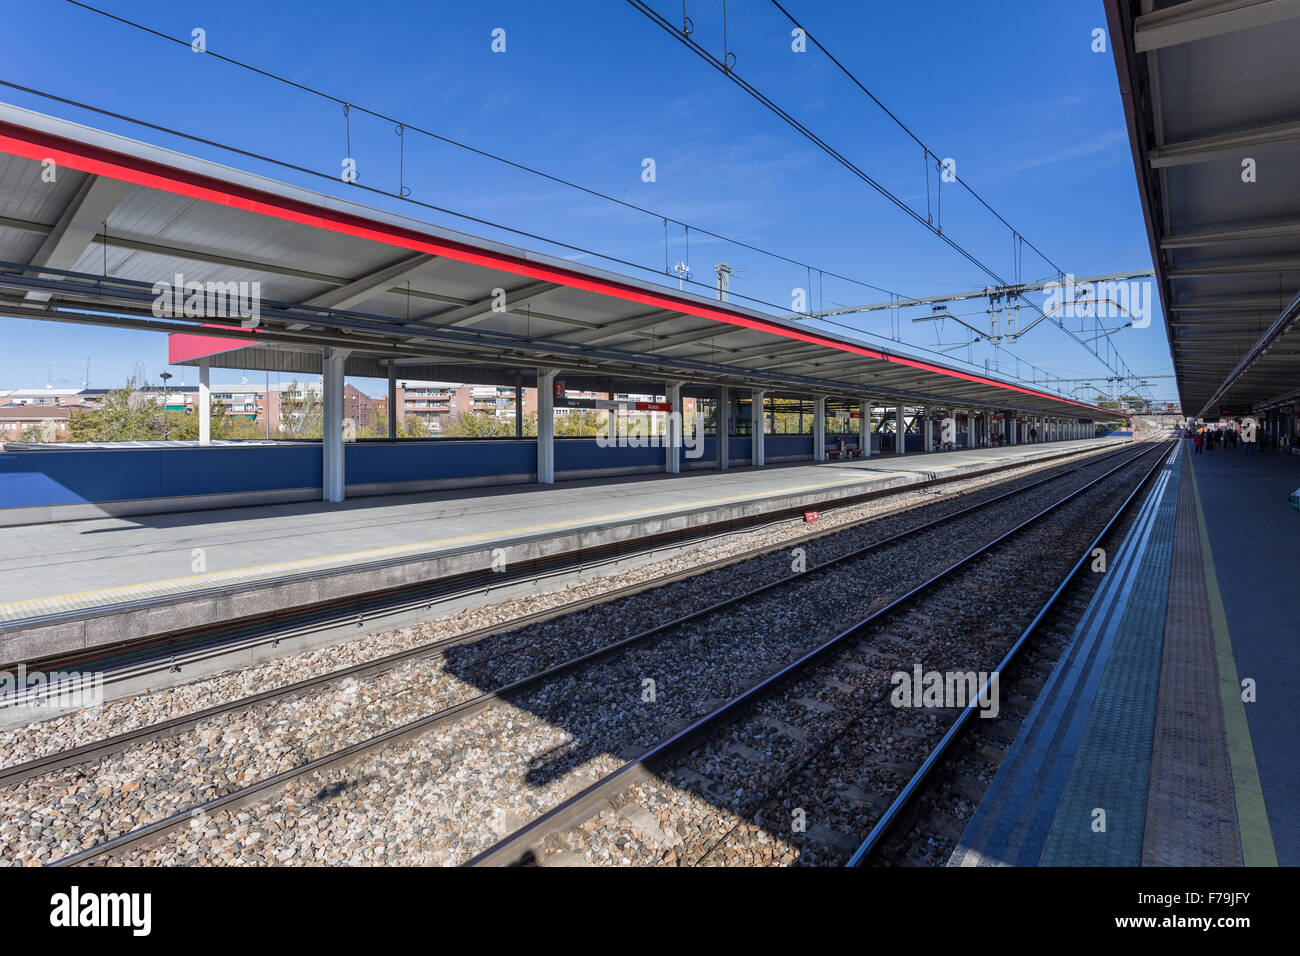 image of a commuter train station in Madrid in Spain Stock Photo